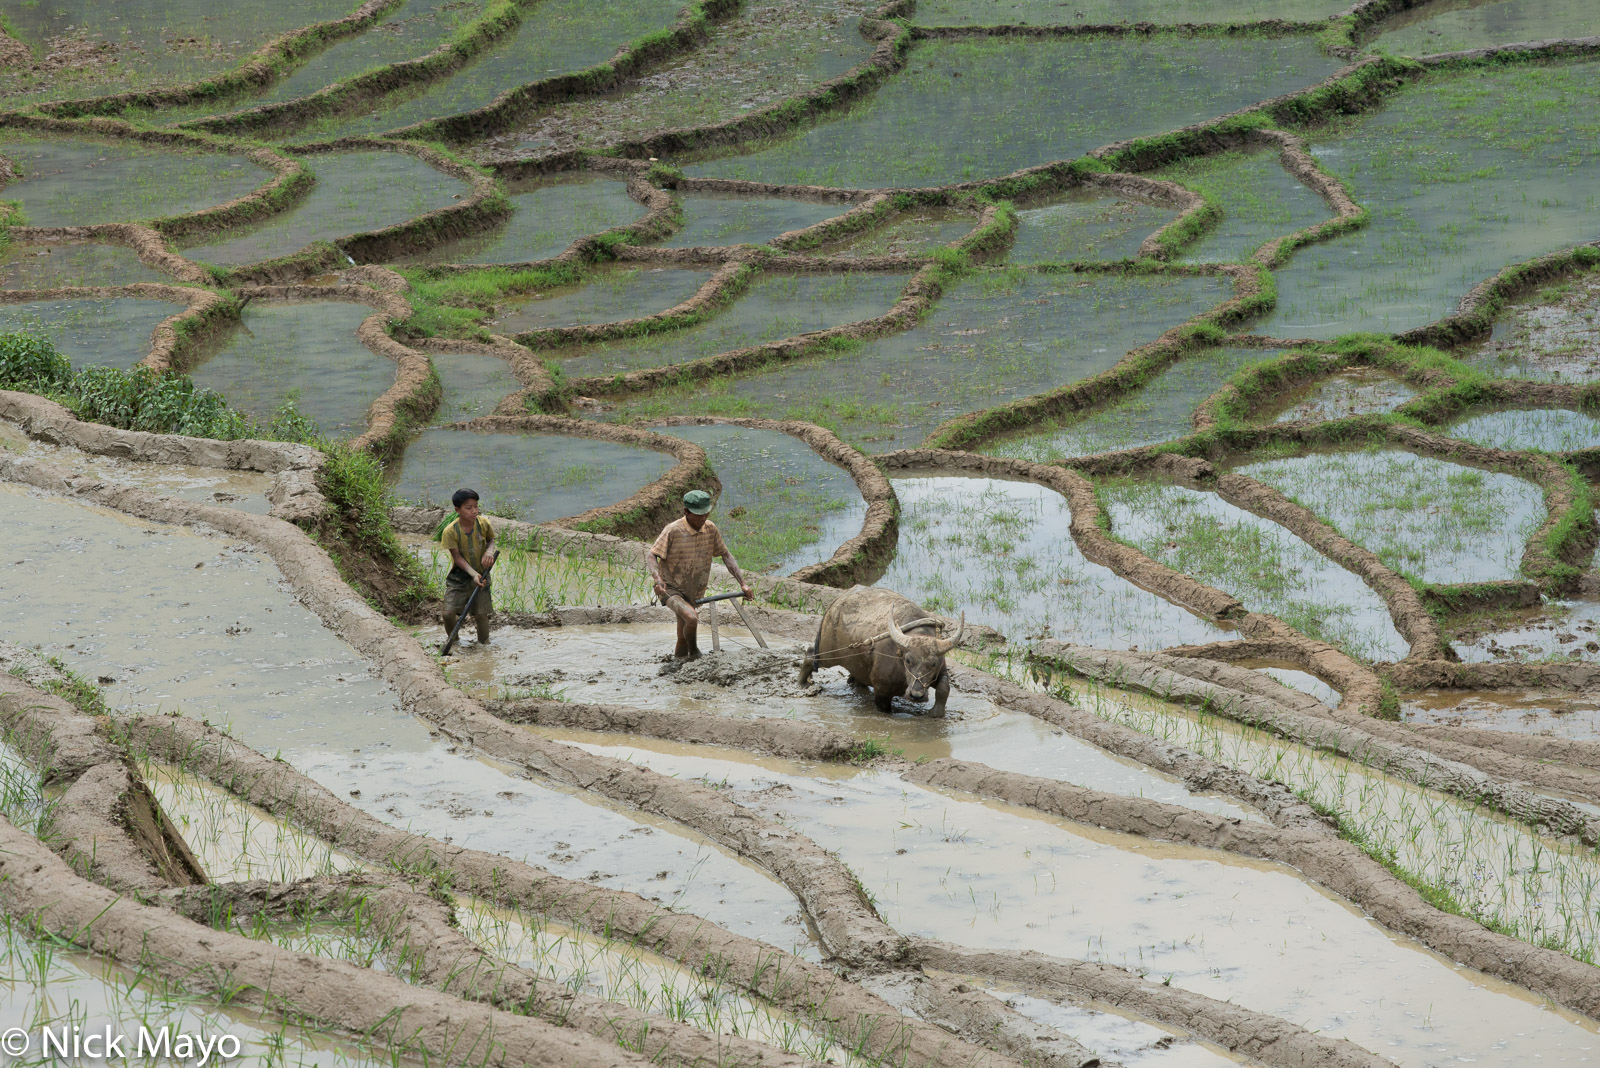 A Hani farmer ploughing his fields with a water buffalo near Y Ty.